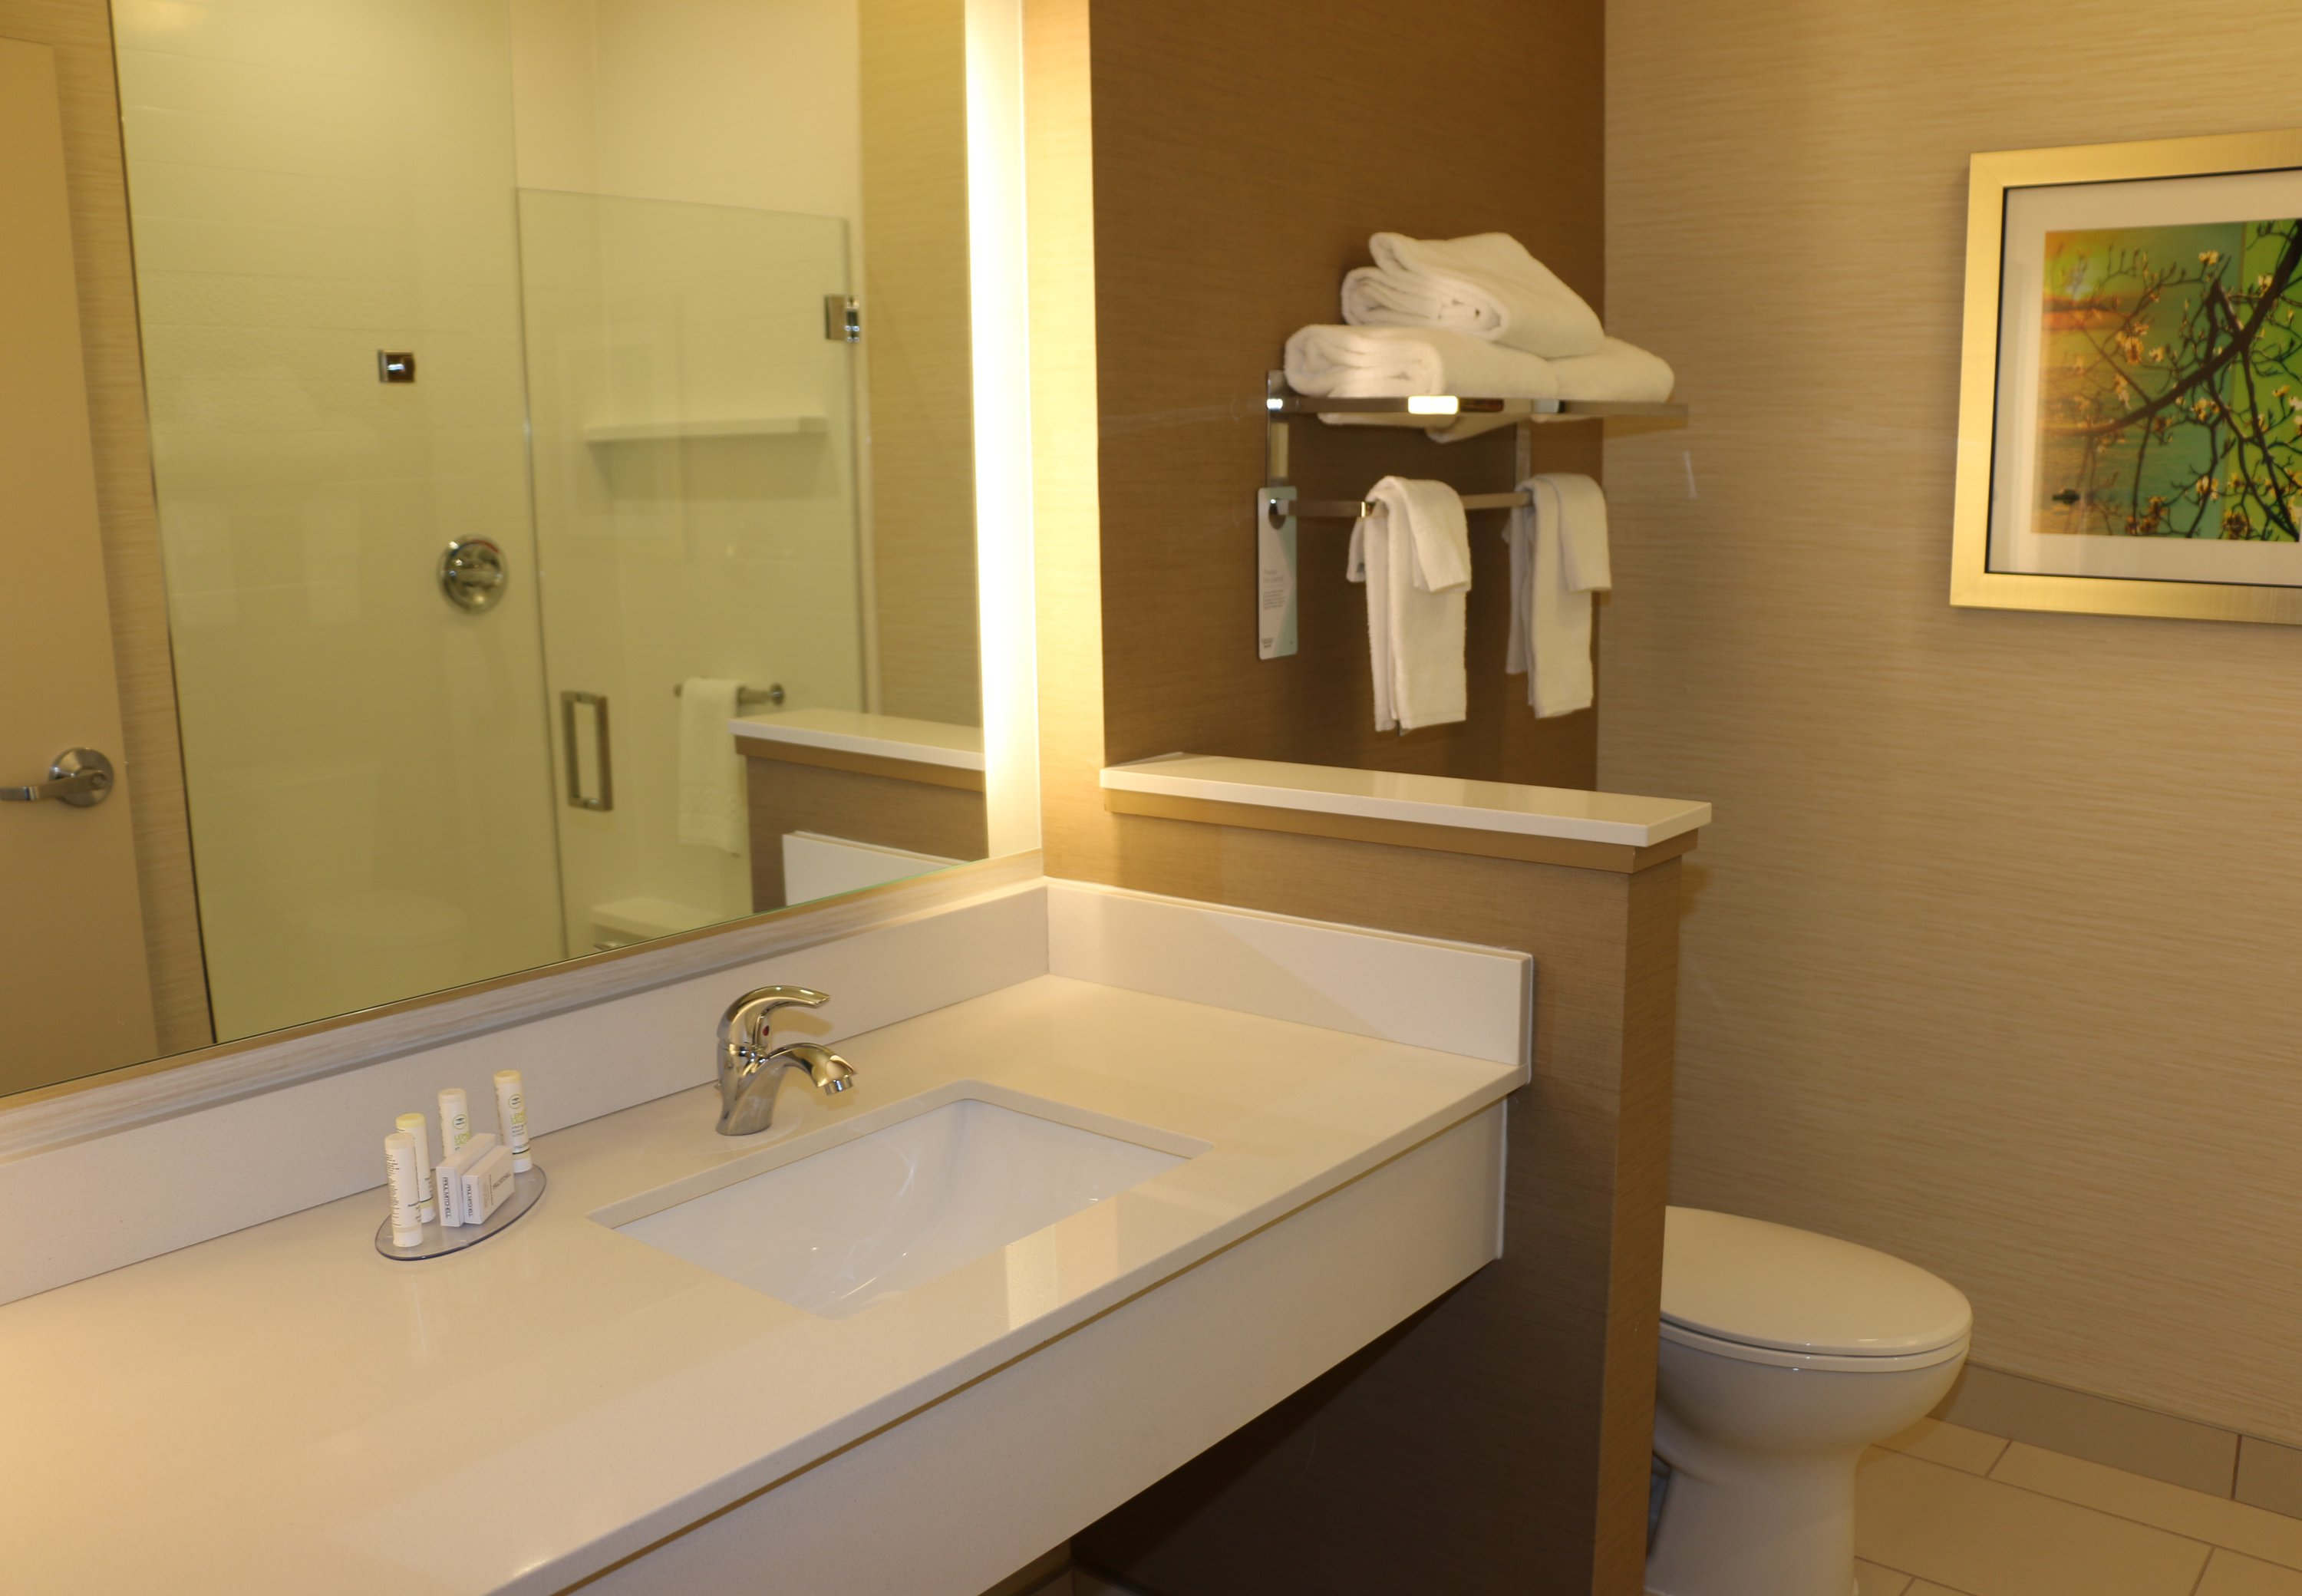 Fairfield Inn & Suites by Marriott Bowling Green image 5